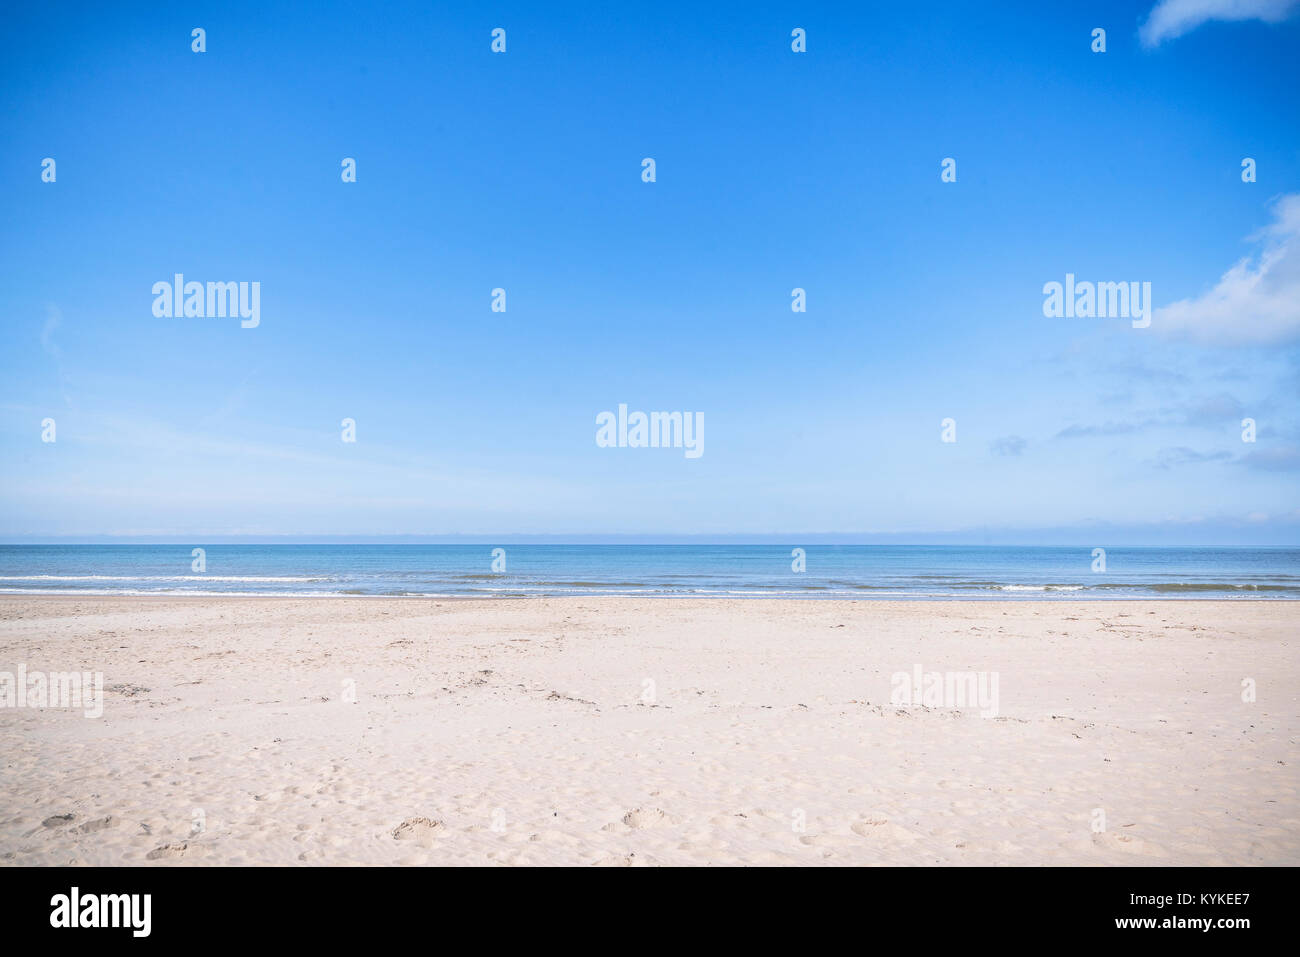 Empty beach by the sea in the summer with blue sky and dry sand - Stock Image